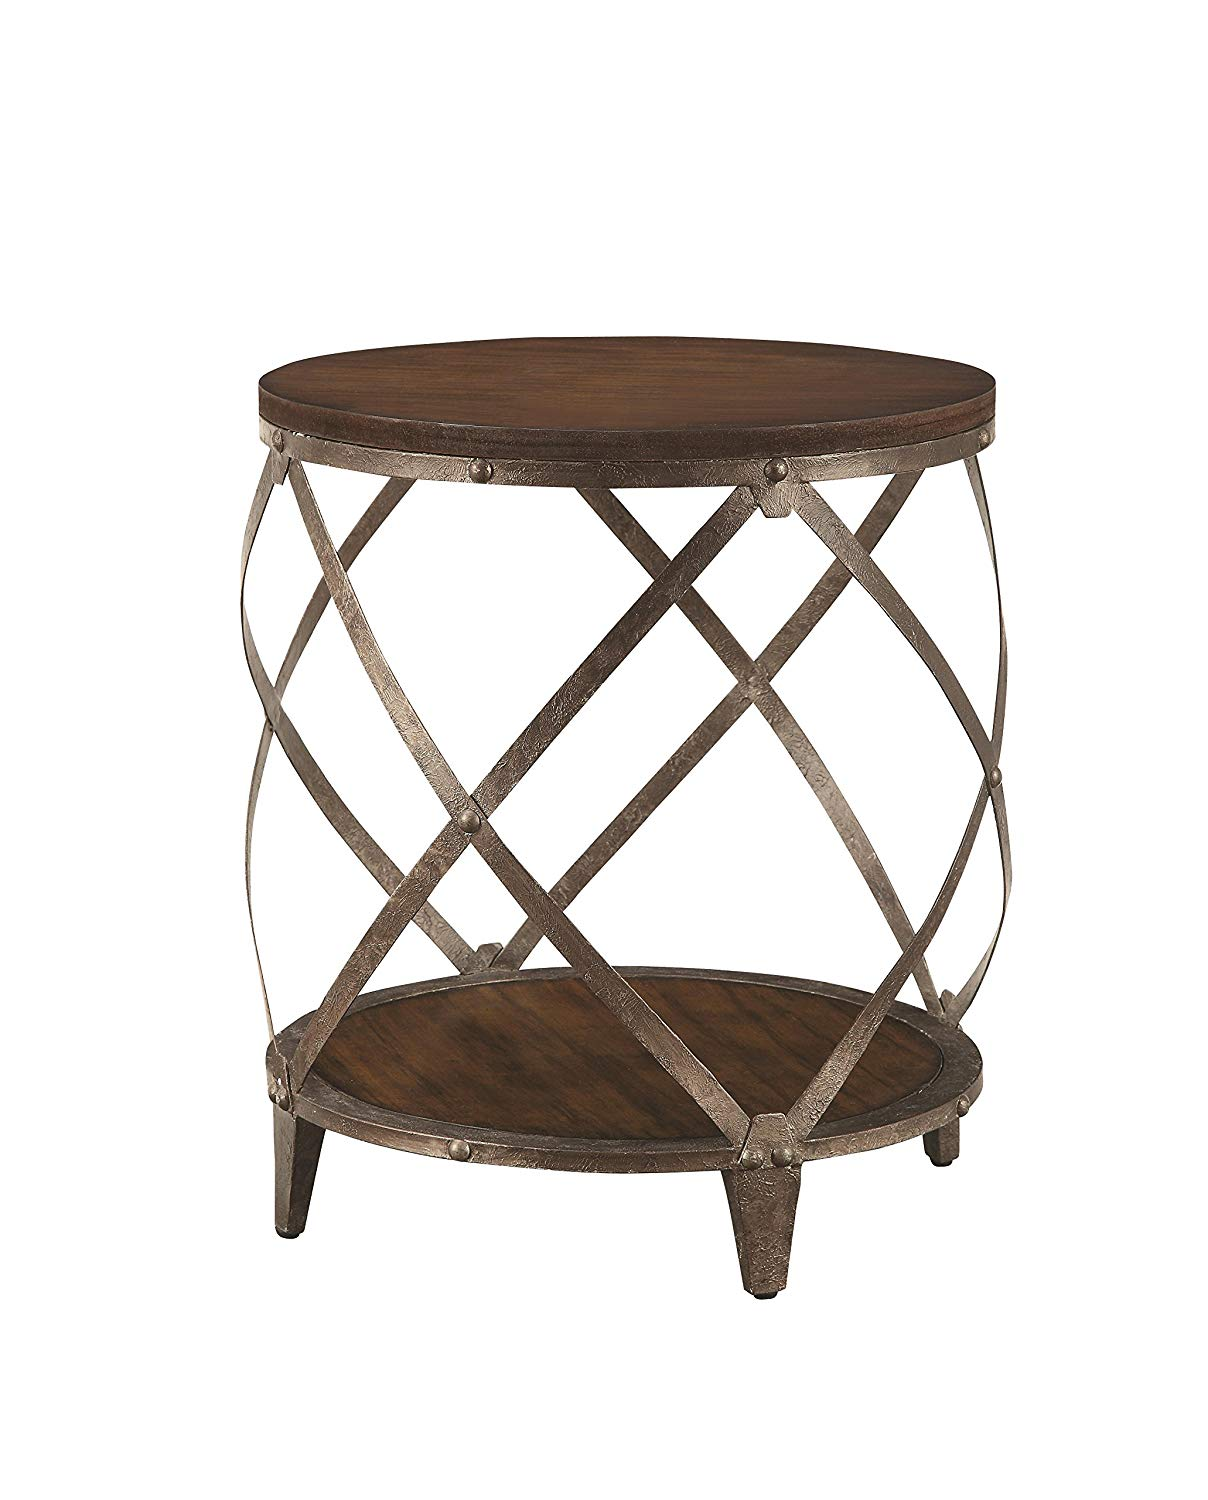 metal accent table with drum shape brown kitchen dining threshold mango wood very small nate berkus bath rug adjustable circular tablecloth beautiful headboards uttermost